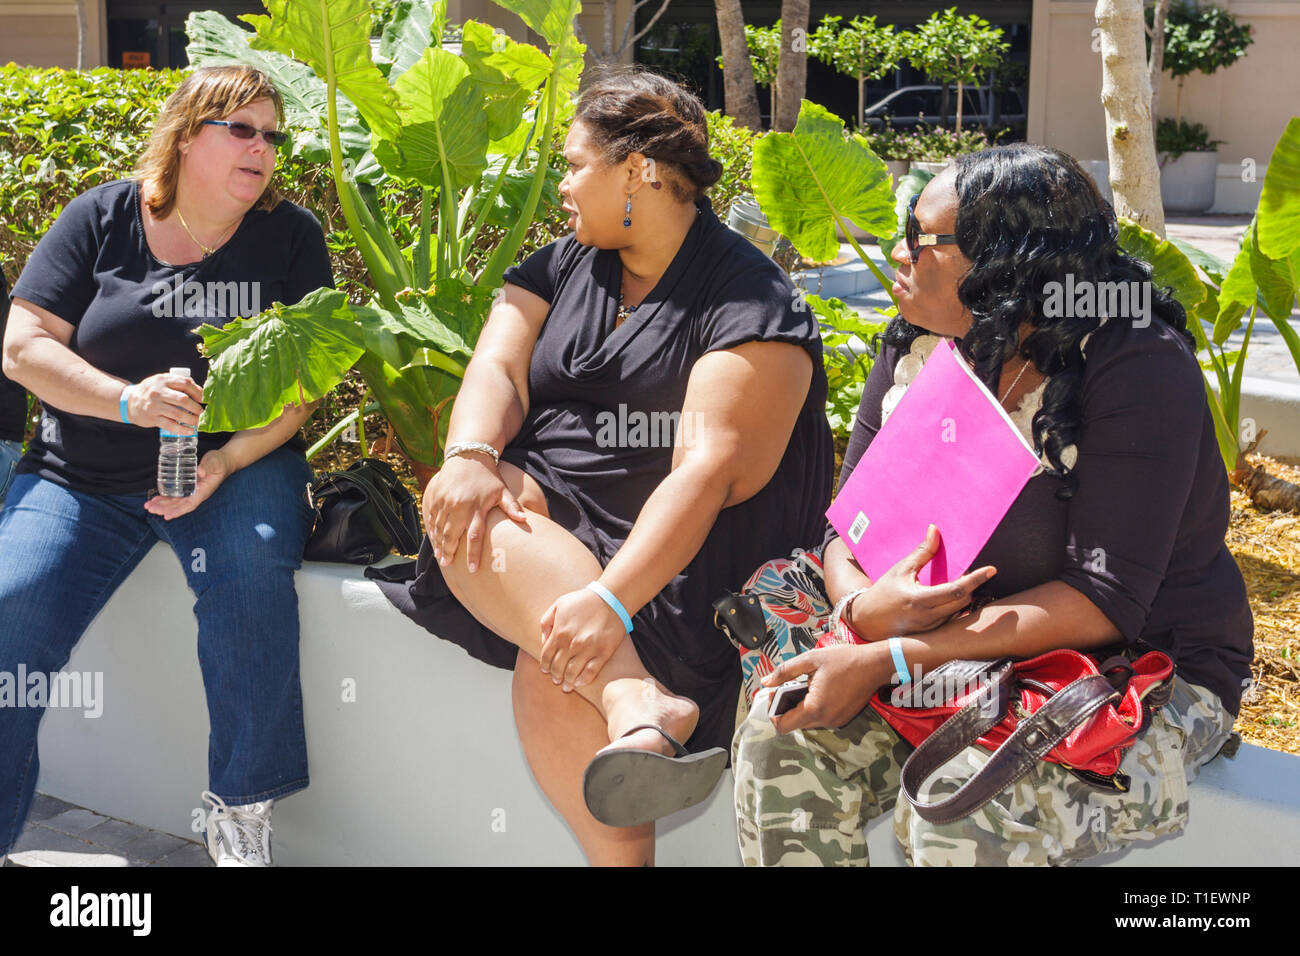 Miami Florida Shops at Midtown The Biggest Loser TV show reality television audition tryout casting overweight obese fat contest - Stock Image